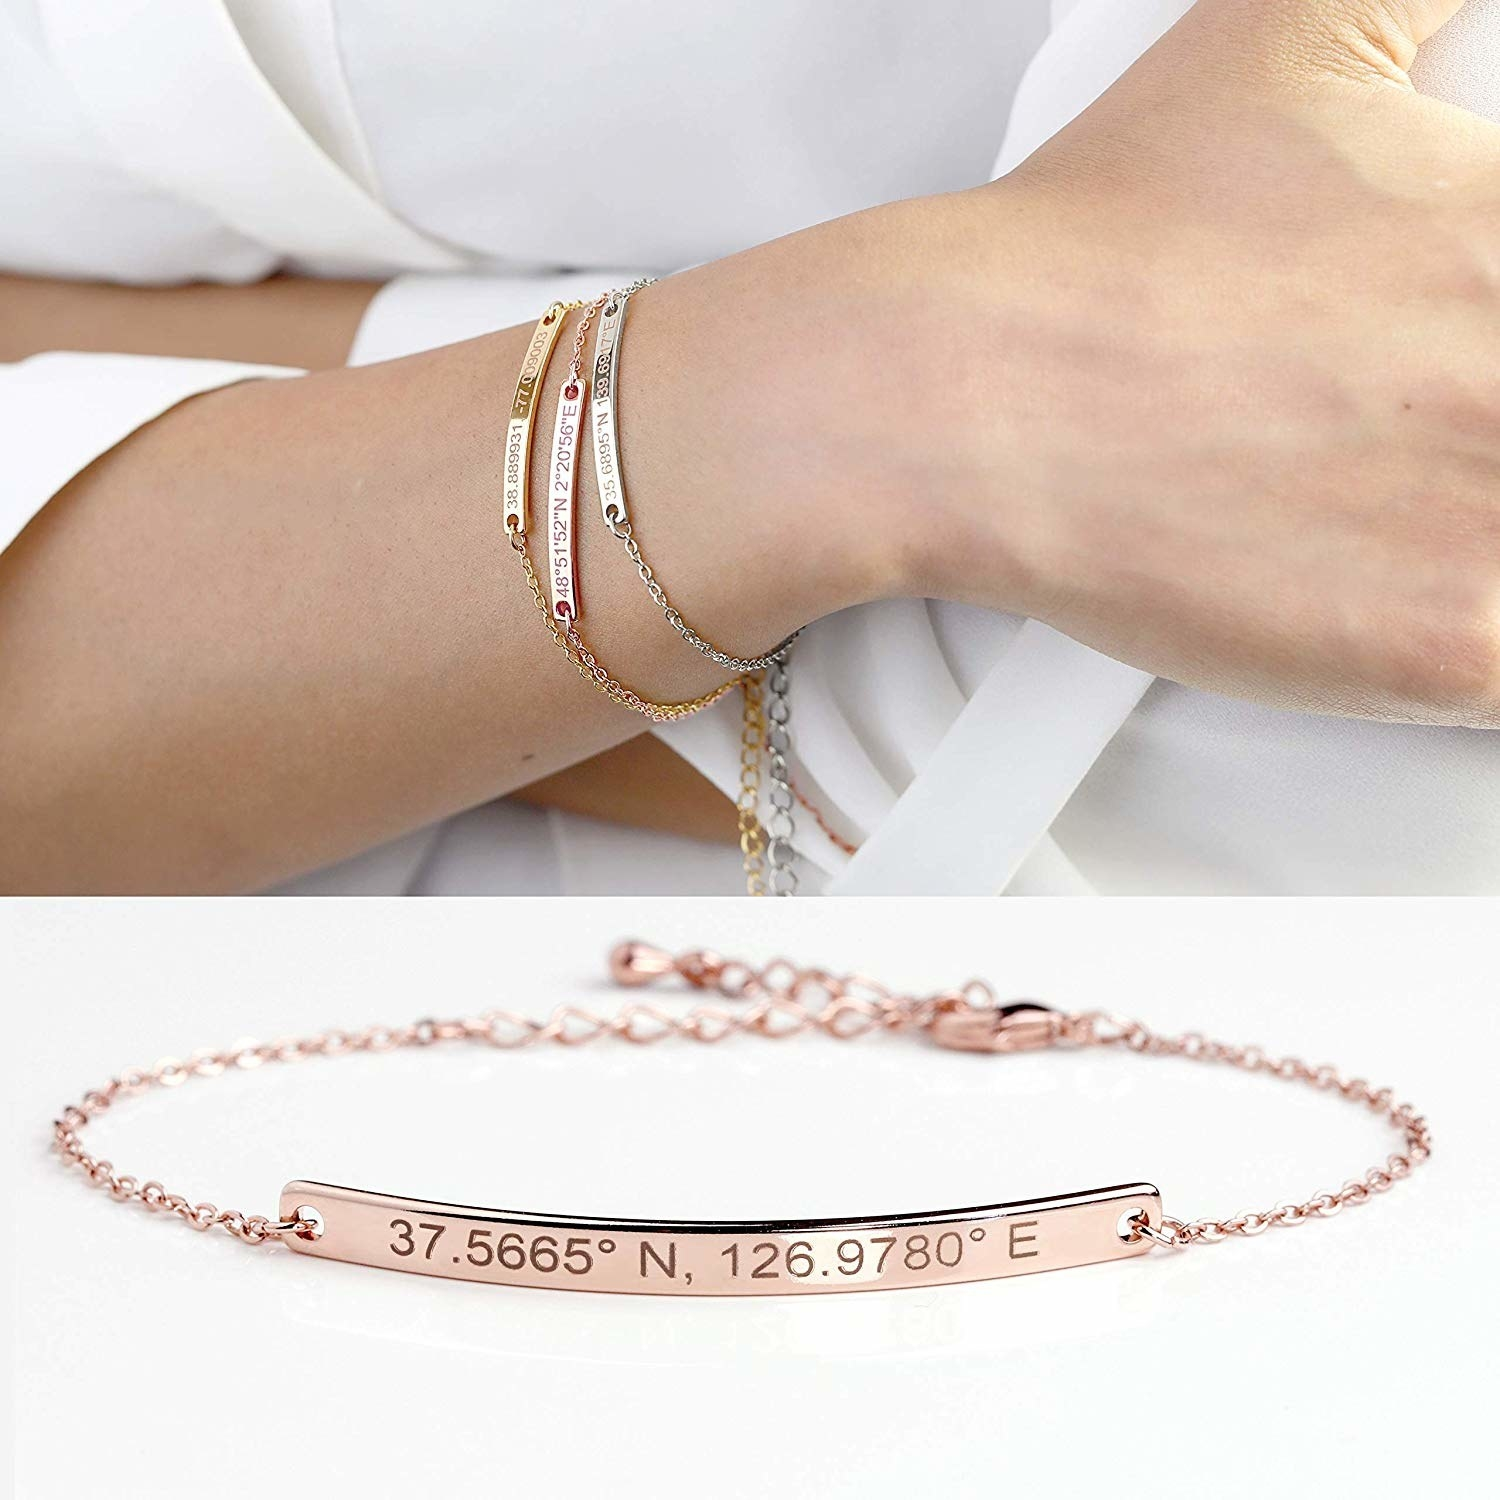 chain bracelet with curved bar charm that has coordinates on it